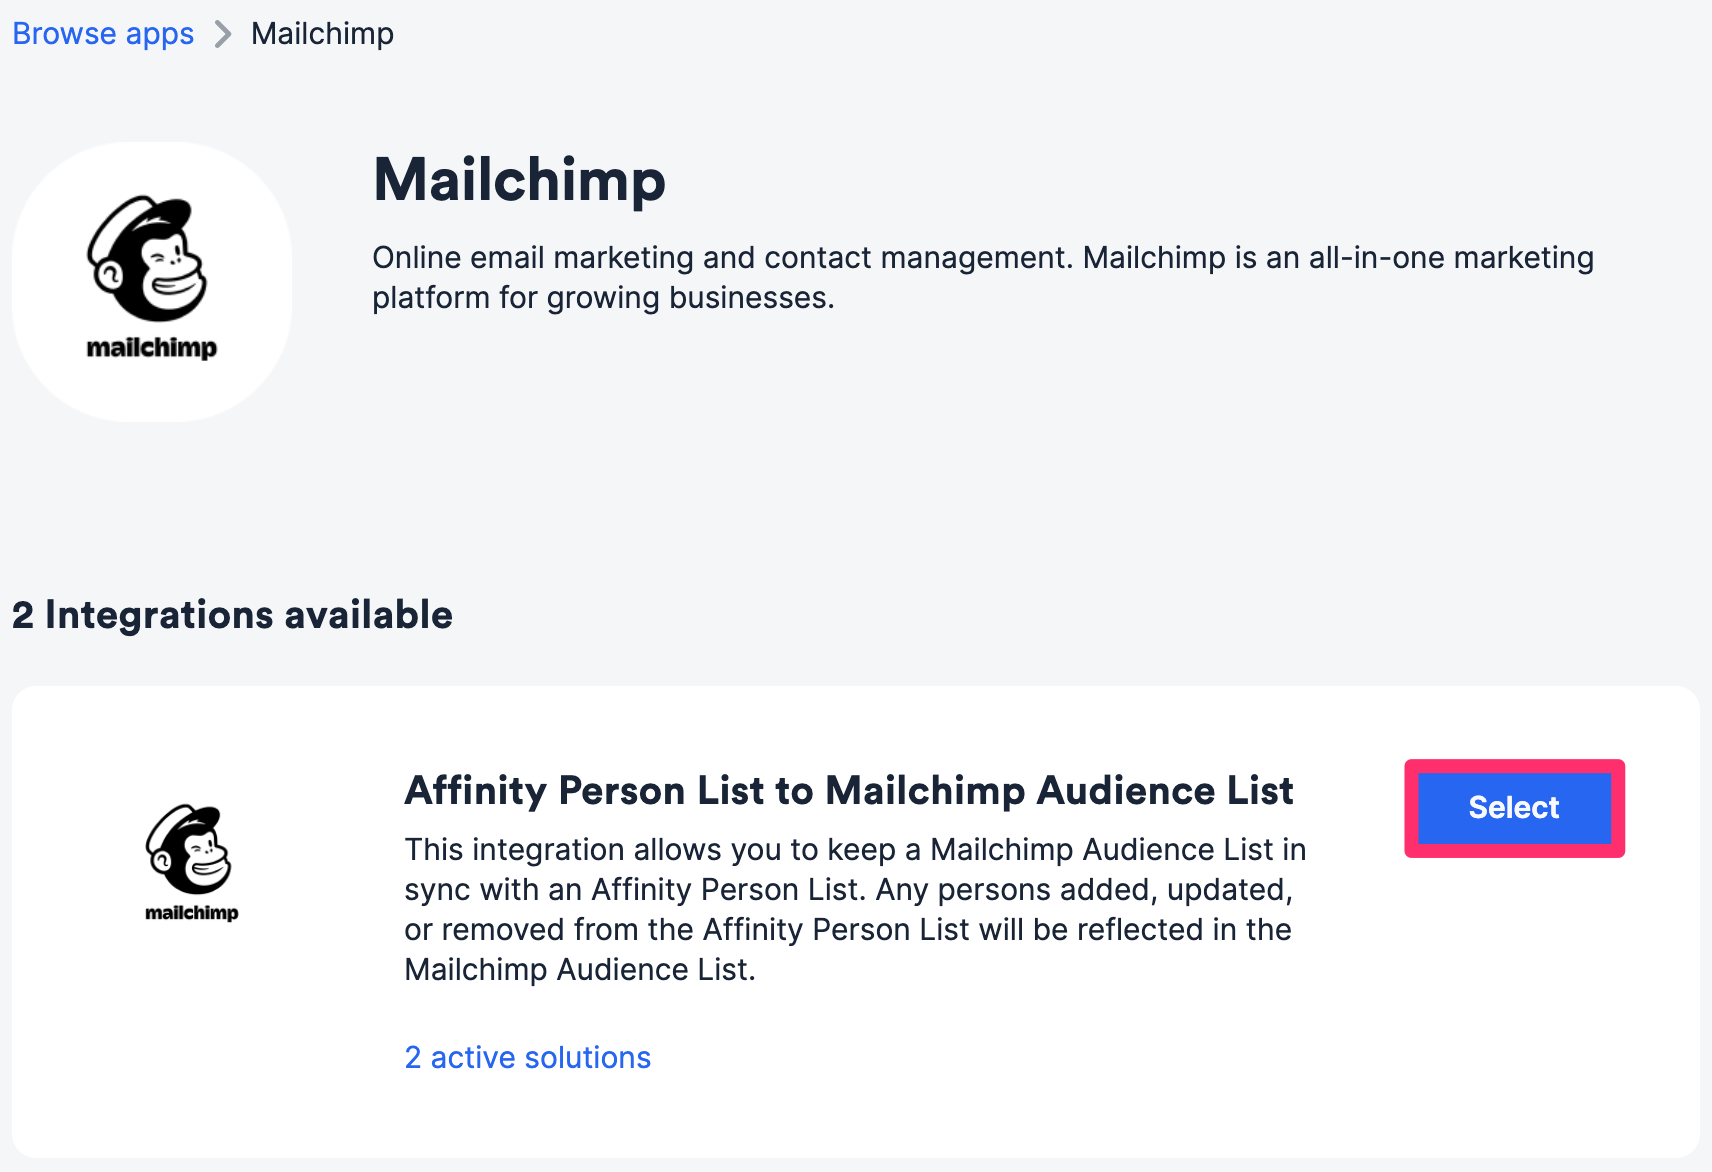 Affinity_Person_List_to_Mailchimp_Audience_List.png